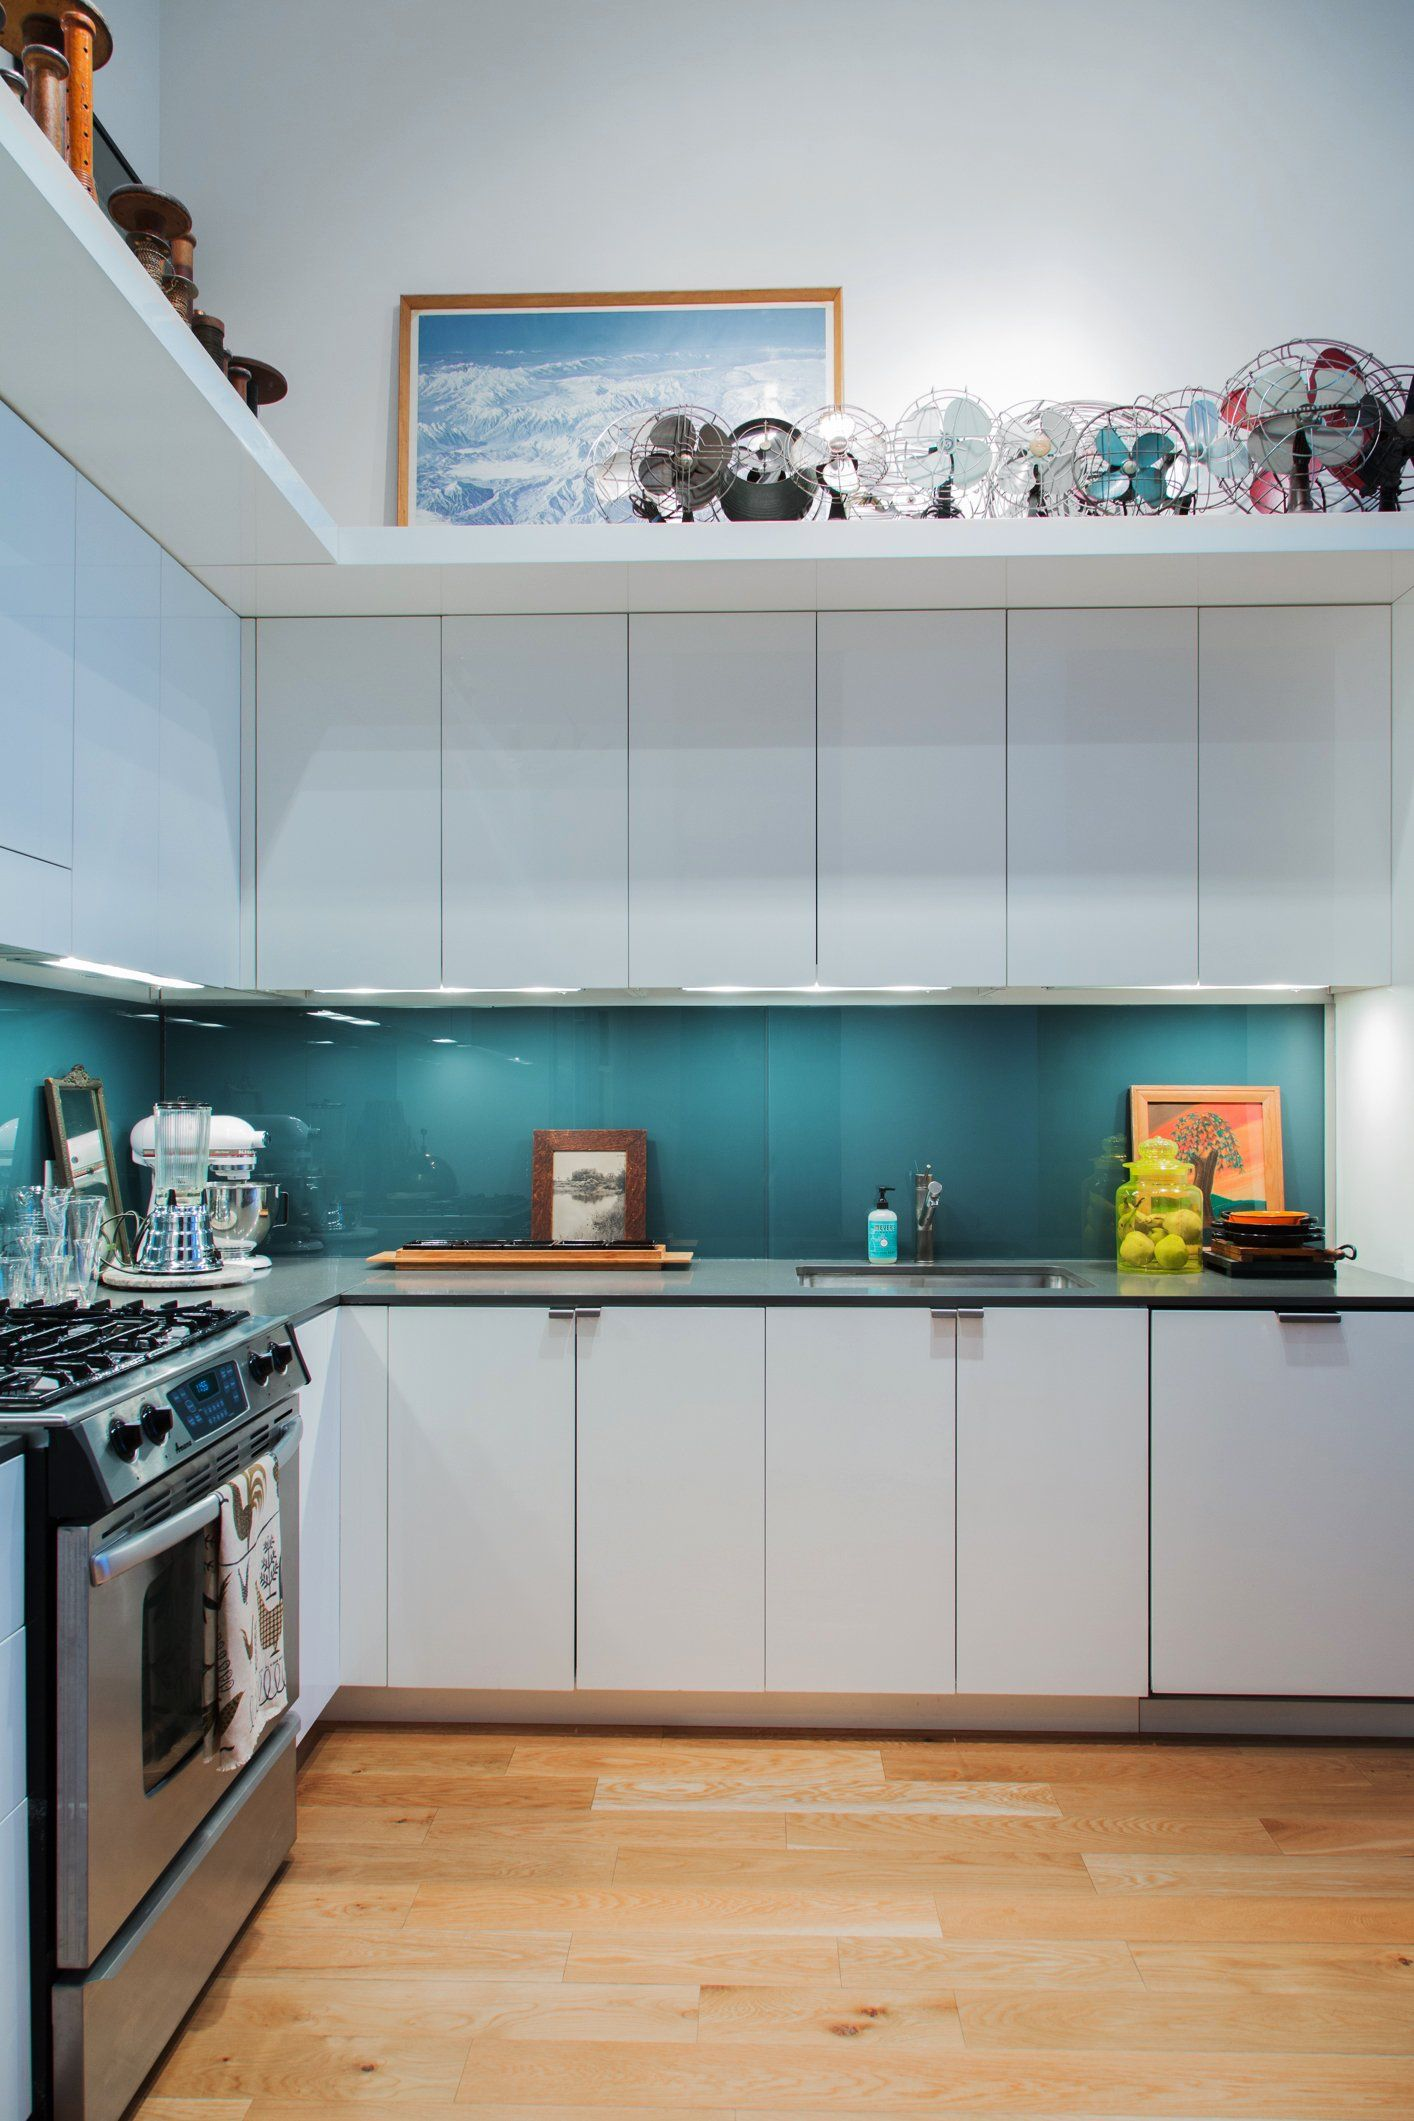 11 Ways the Smartest Cooks Use the Space Above Their Cabinet ...